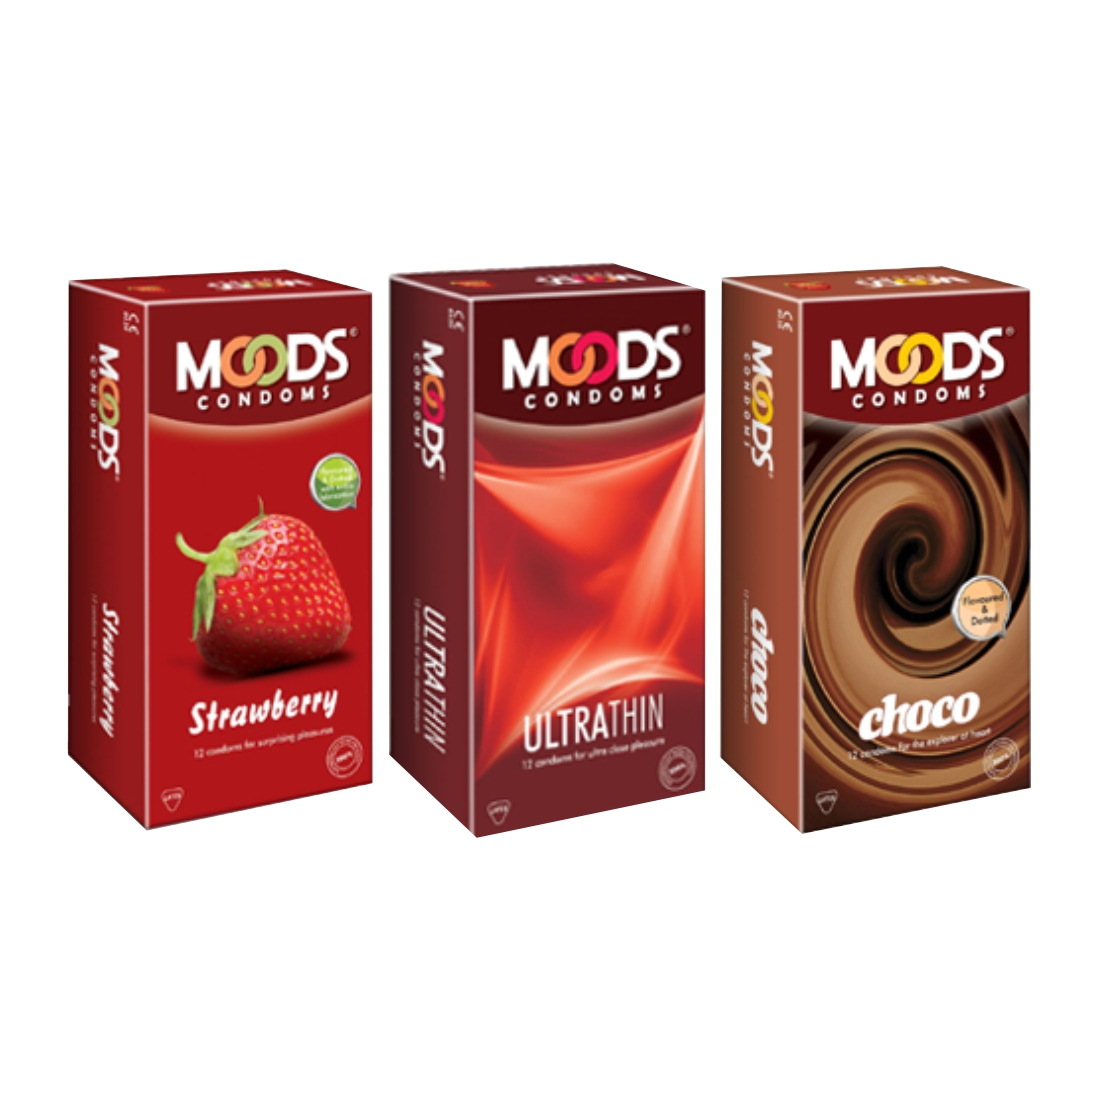 Moods 12S Strawbery Ultrathin And Choco Pack Of 3 Condom